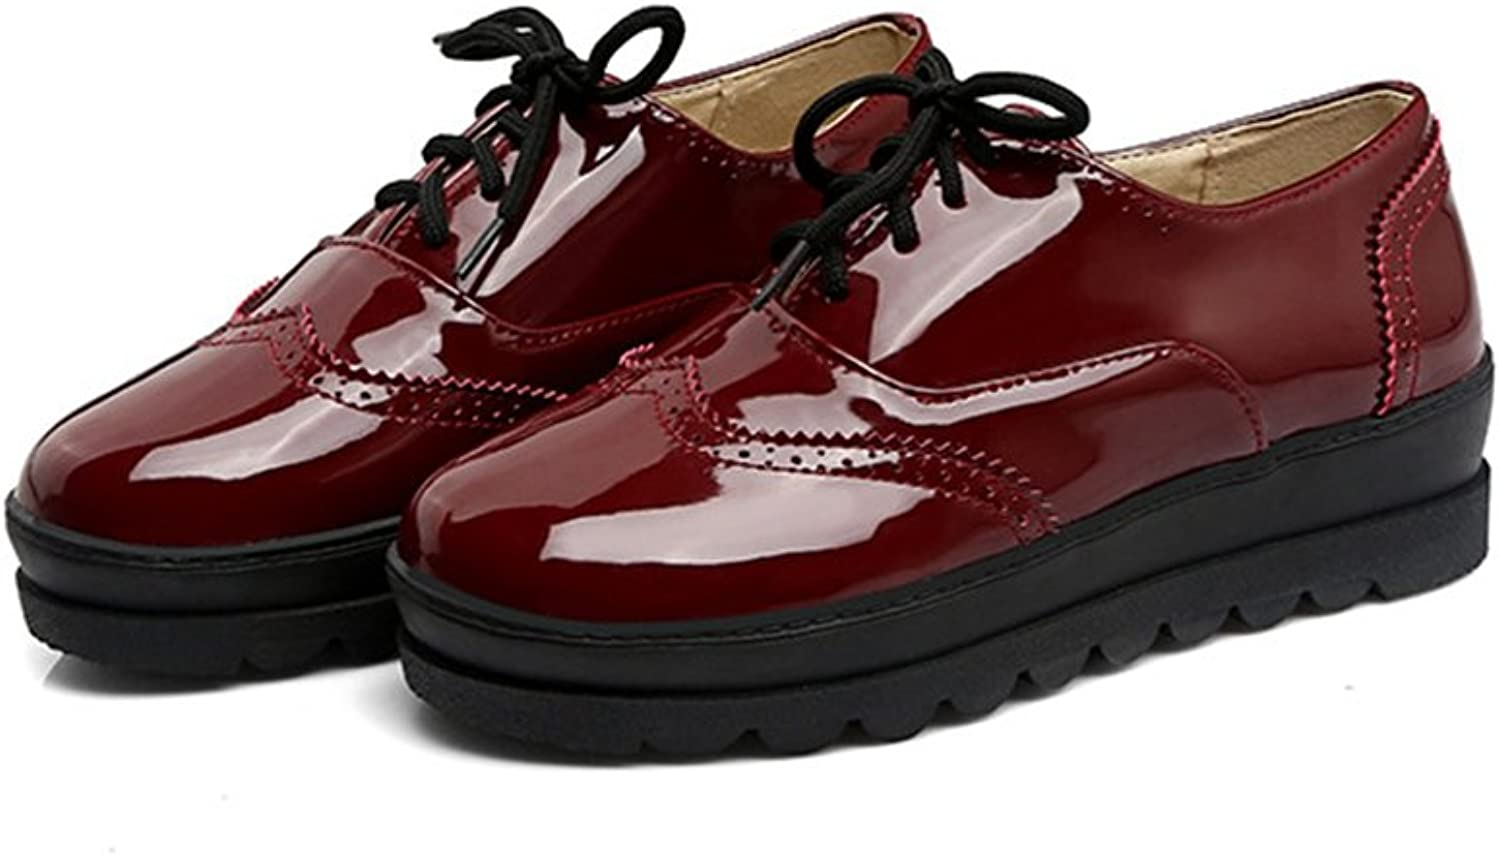 T-JULY Women's Fashion Oxfords shoes - Comfy Wingtip Lace-up Round Toe Platform Casual shoes